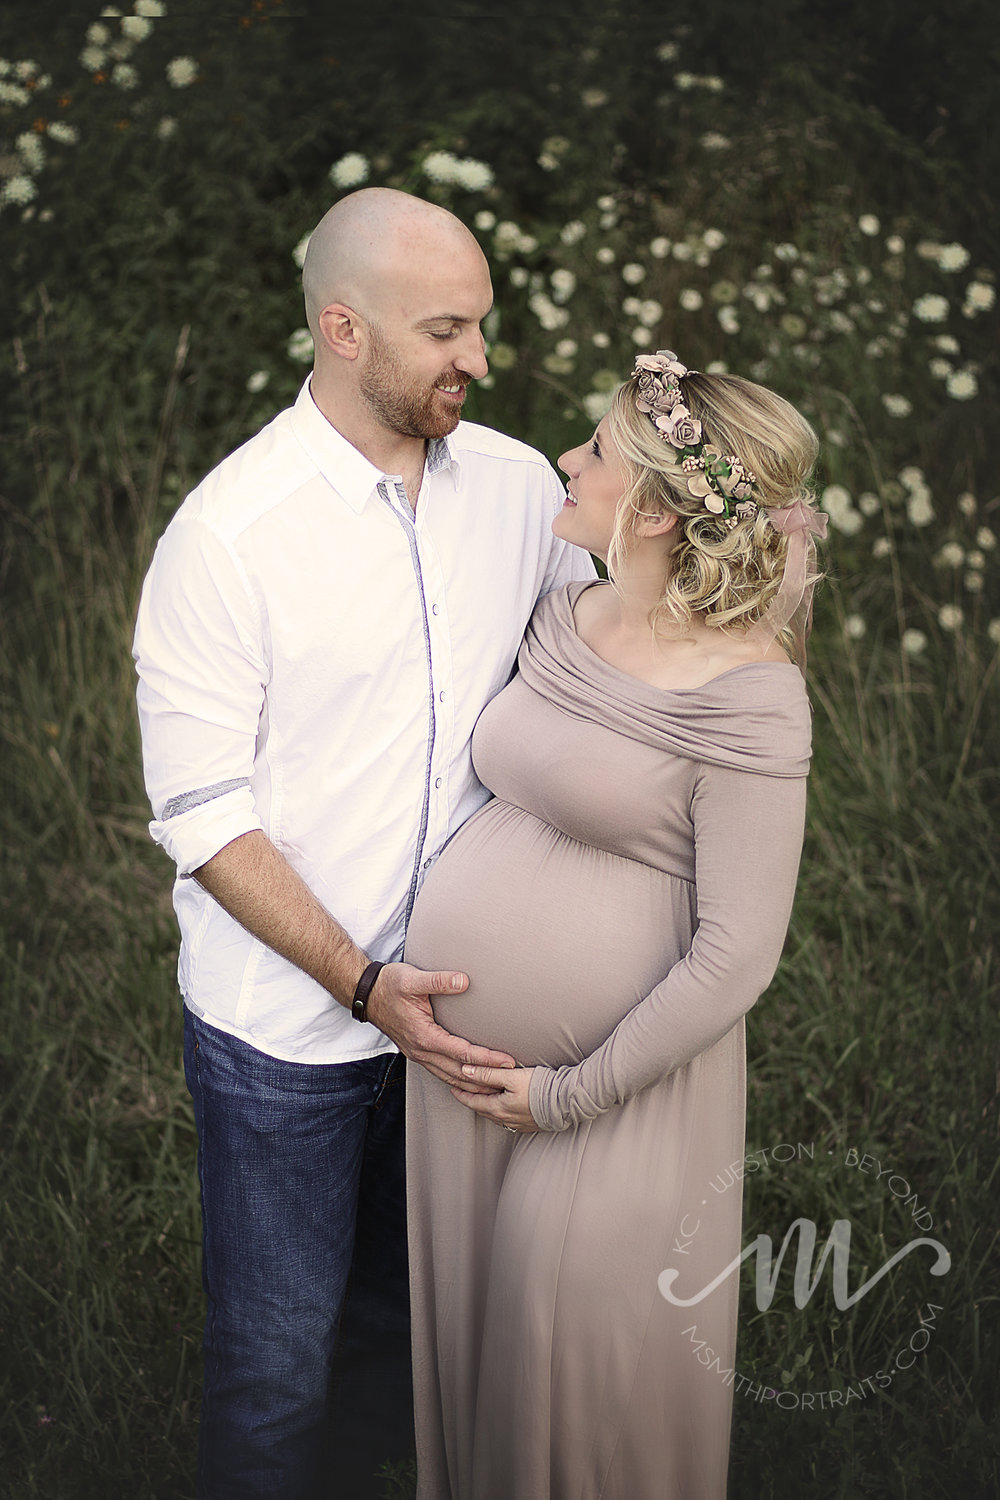 Husband and wife maternity photo